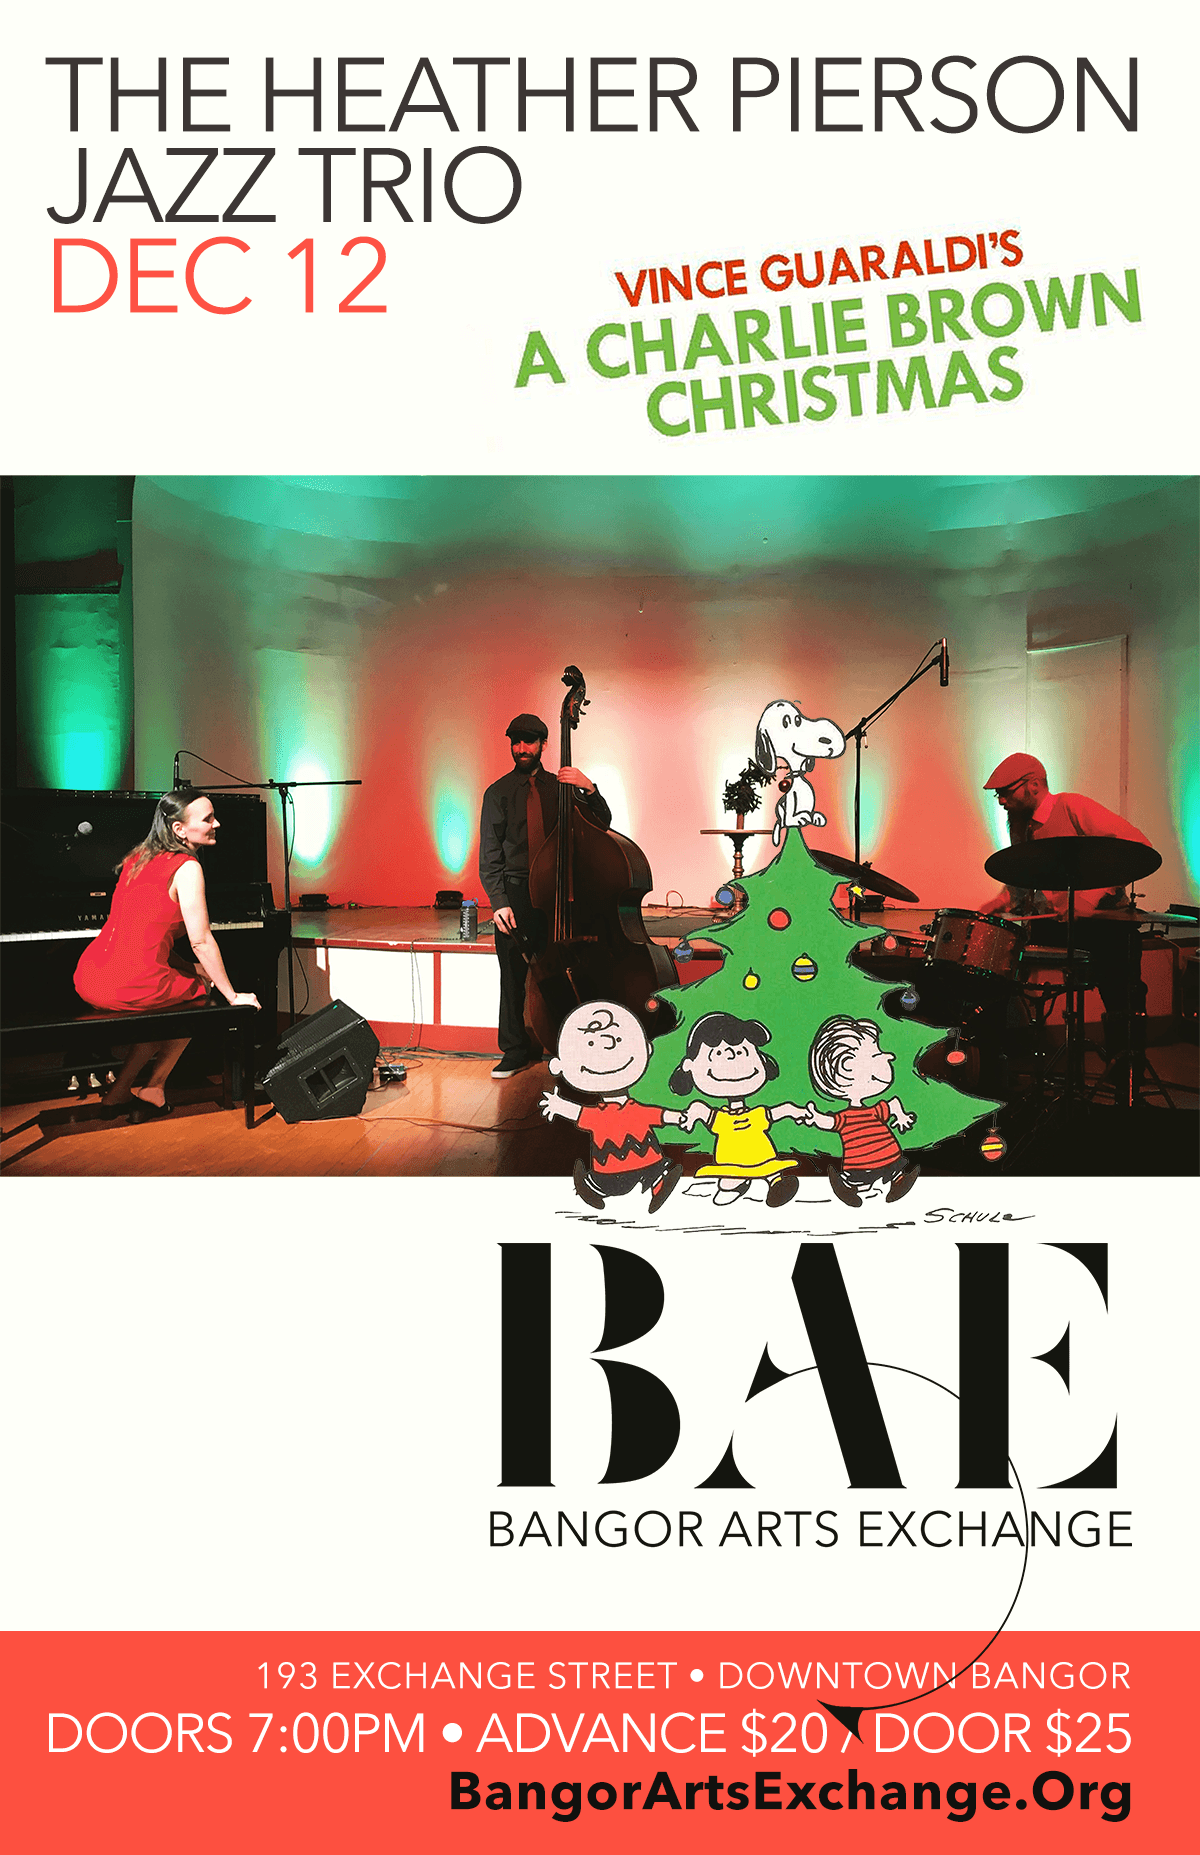 Charlie Brown Christmas Dec 2020 12/12/2020: Heather Pierson Jazz Trio performs A Charlie Brown